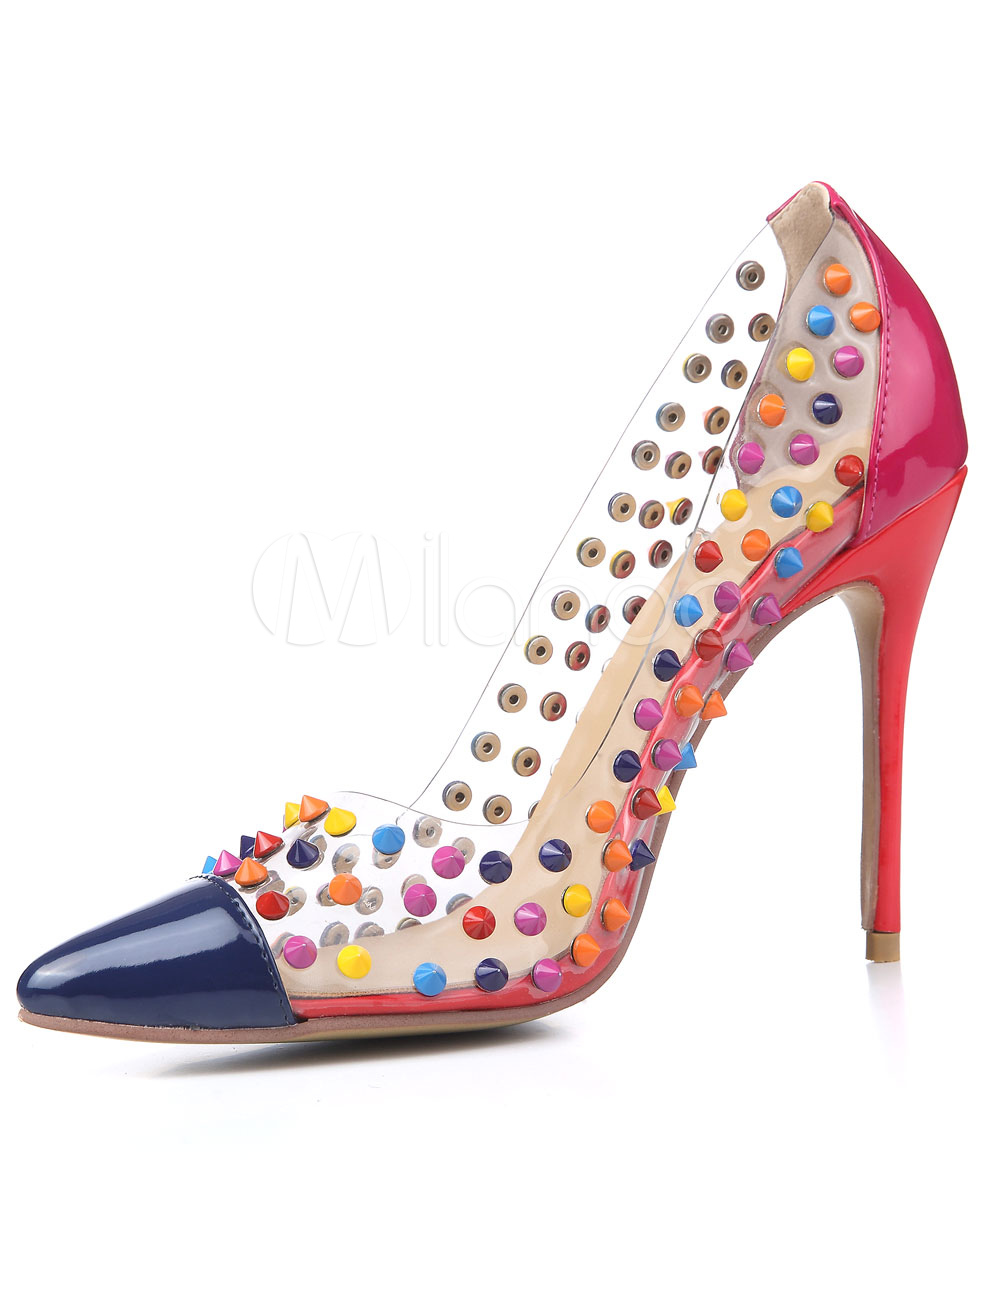 Buy Women High Heels Red Pointed Toe Rivets Stiletto Heel Slip On Pumps Spike Shoes for $53.09 in Milanoo store